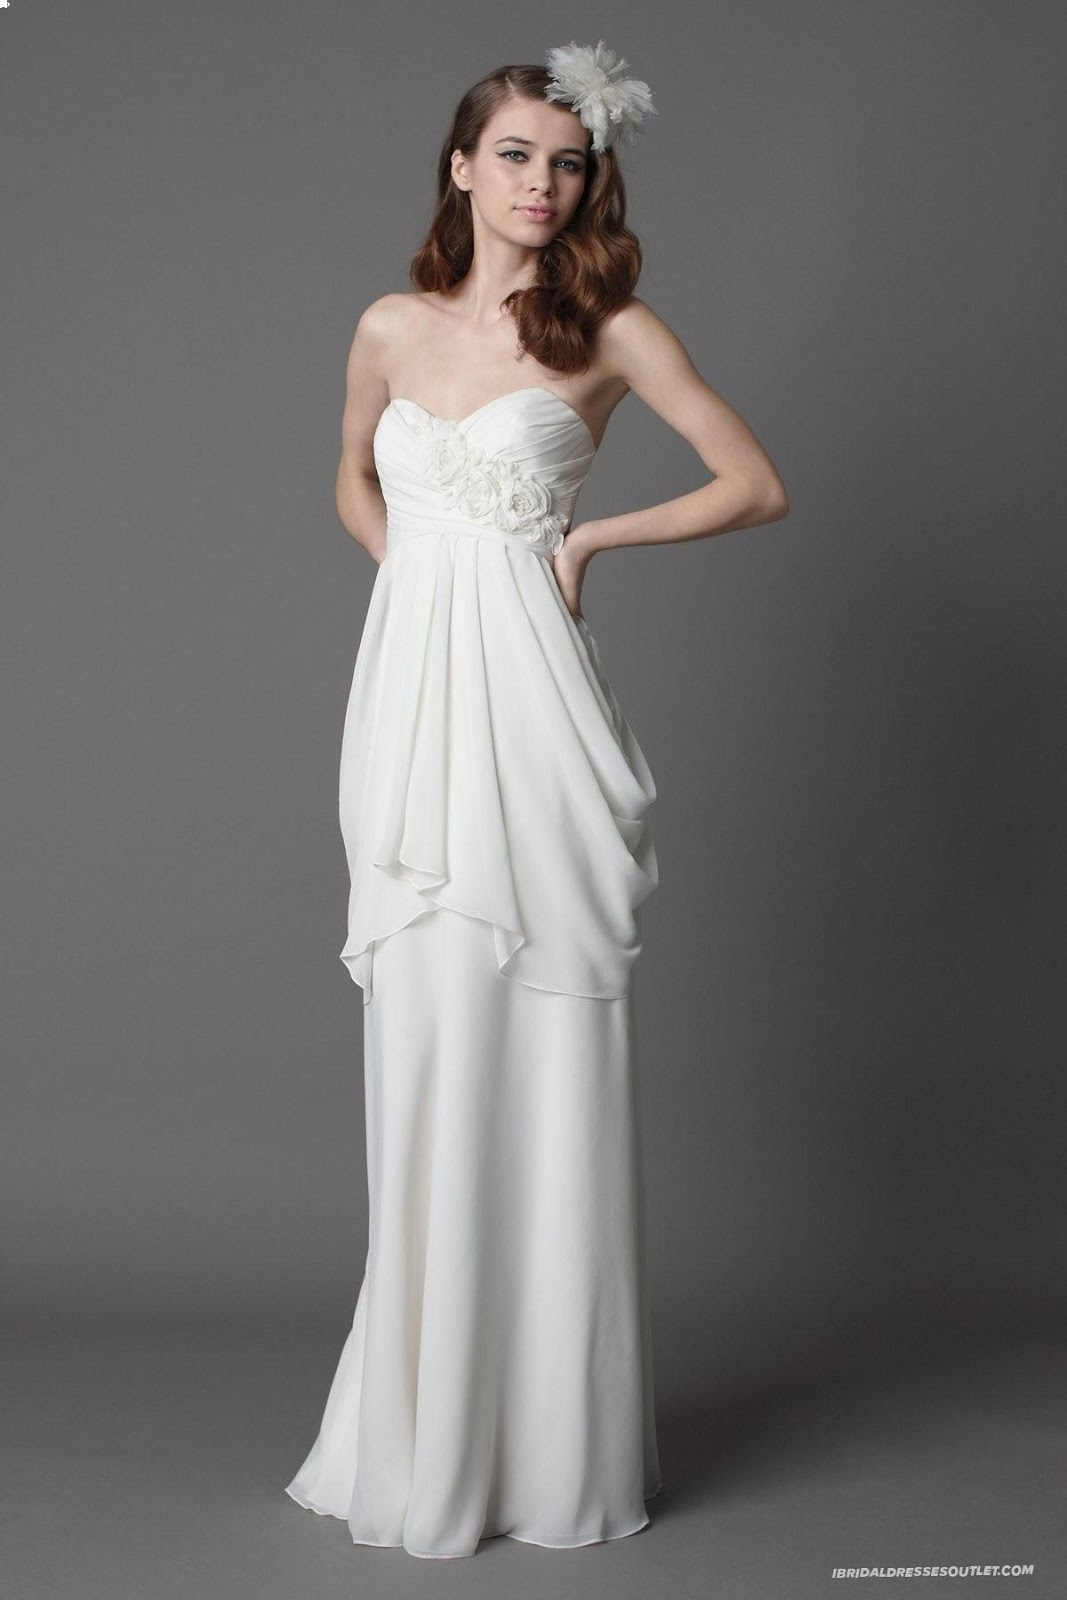 Draped+Casual+Wedding+Dress+for+Outdoor+Weddings - Informal Wedding Dresses